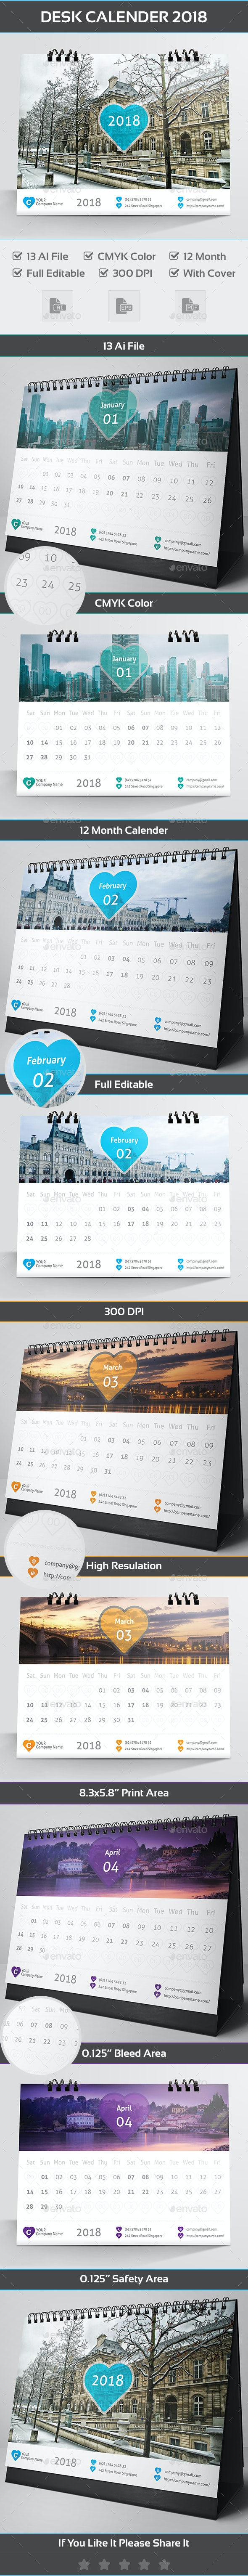 Desk Calender 2018 - Calendars Stationery